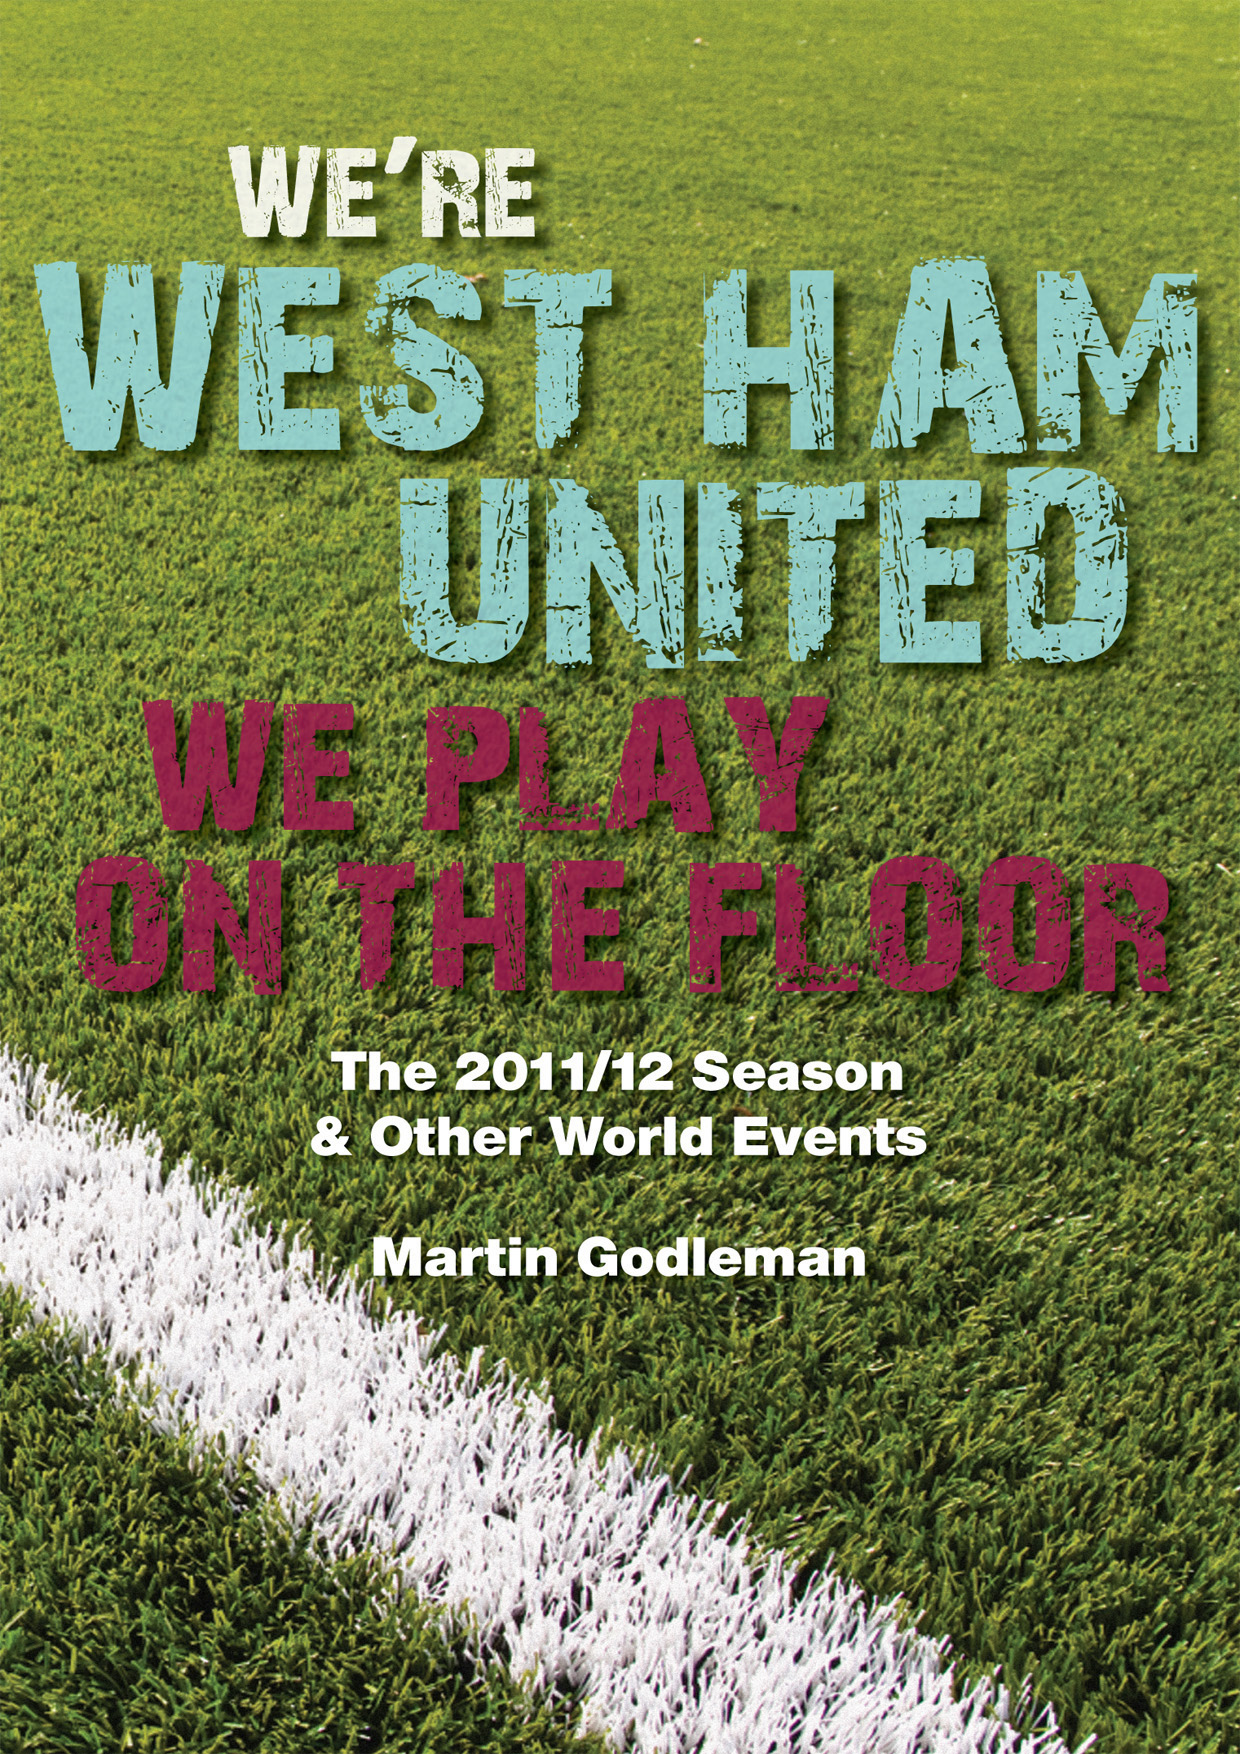 We're West Ham United - We Play On The Floor